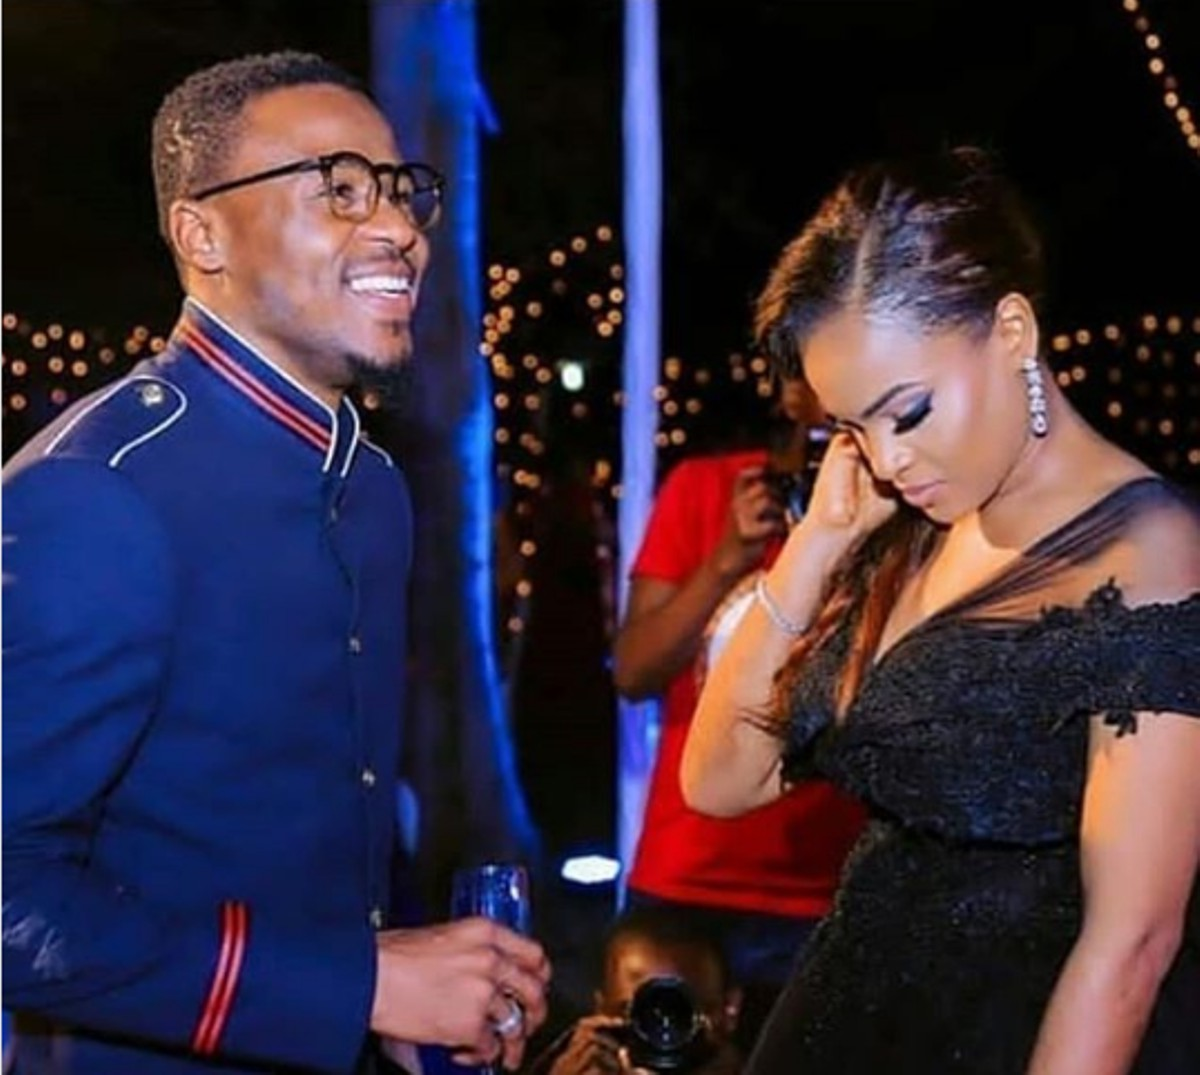 Ali Kiba with his wife Amina